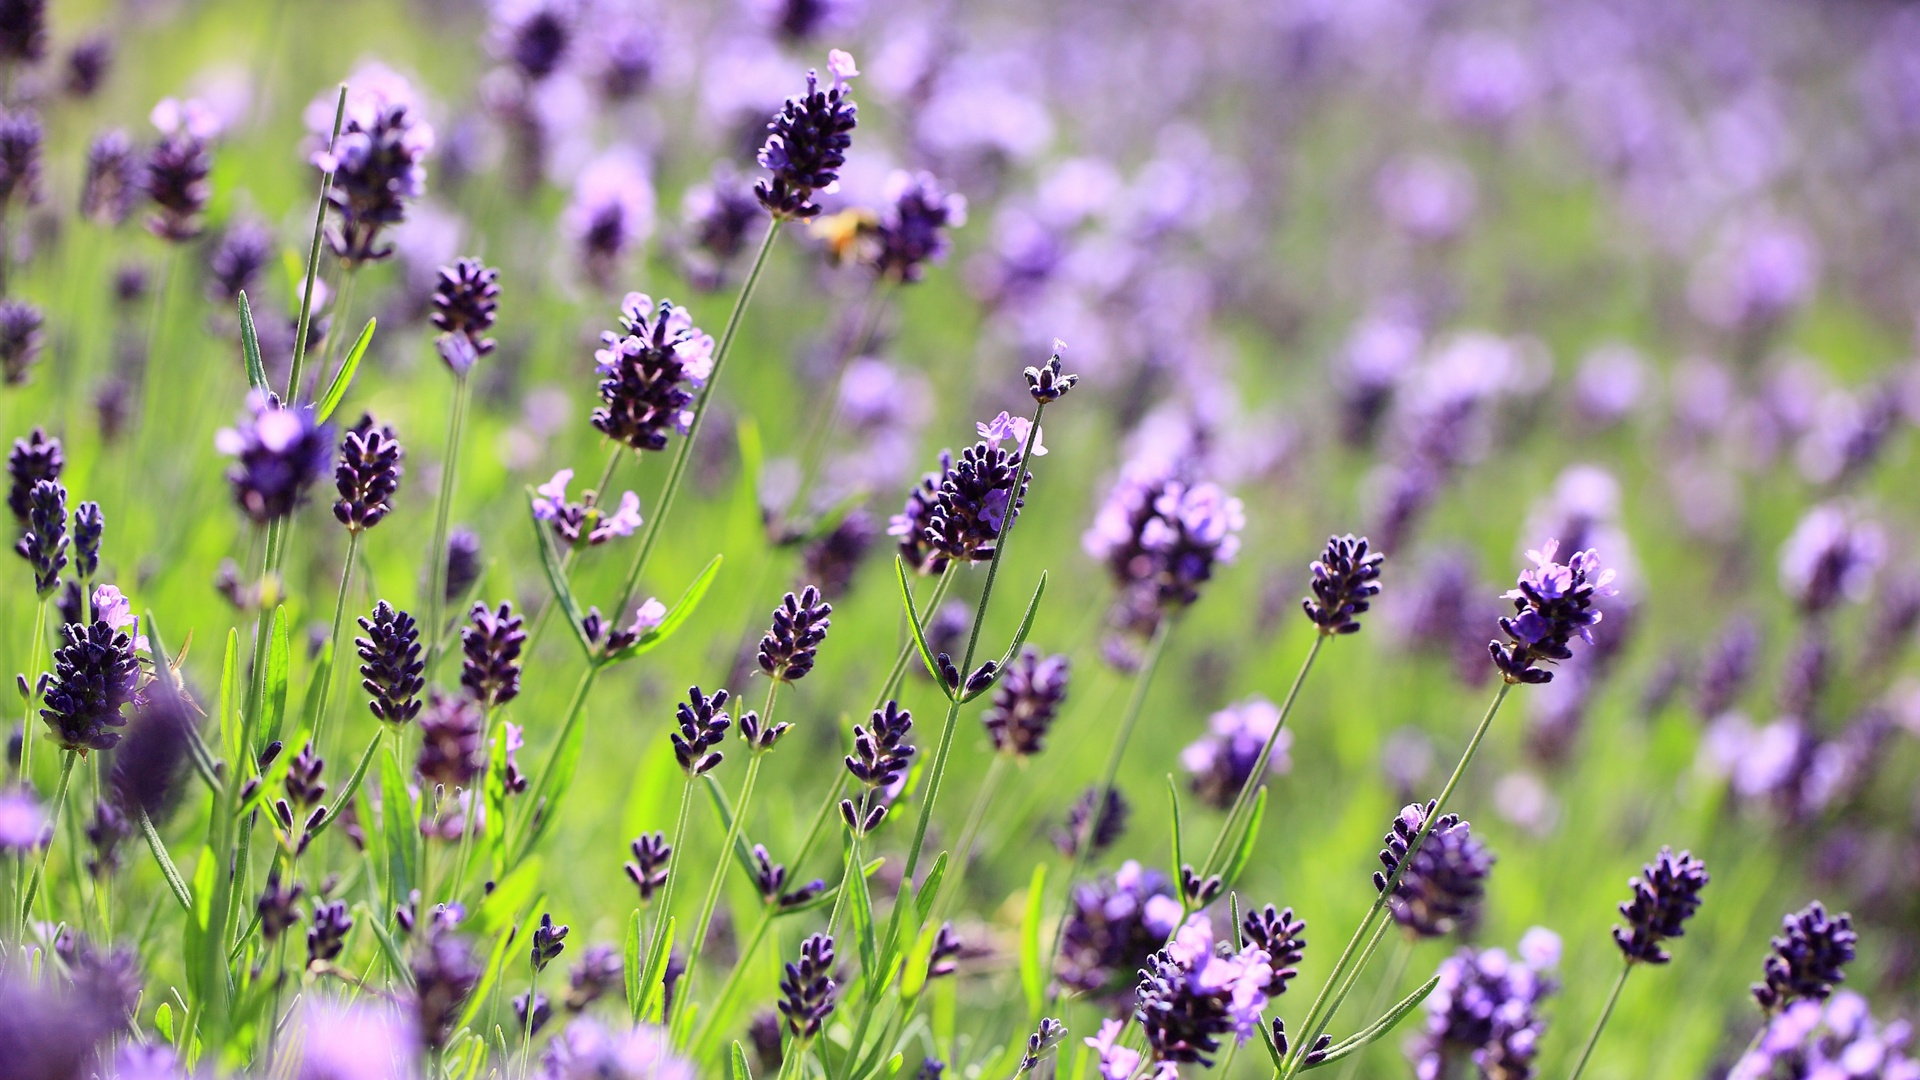 lavender flowers wallpapers 2560x1440 - photo #5